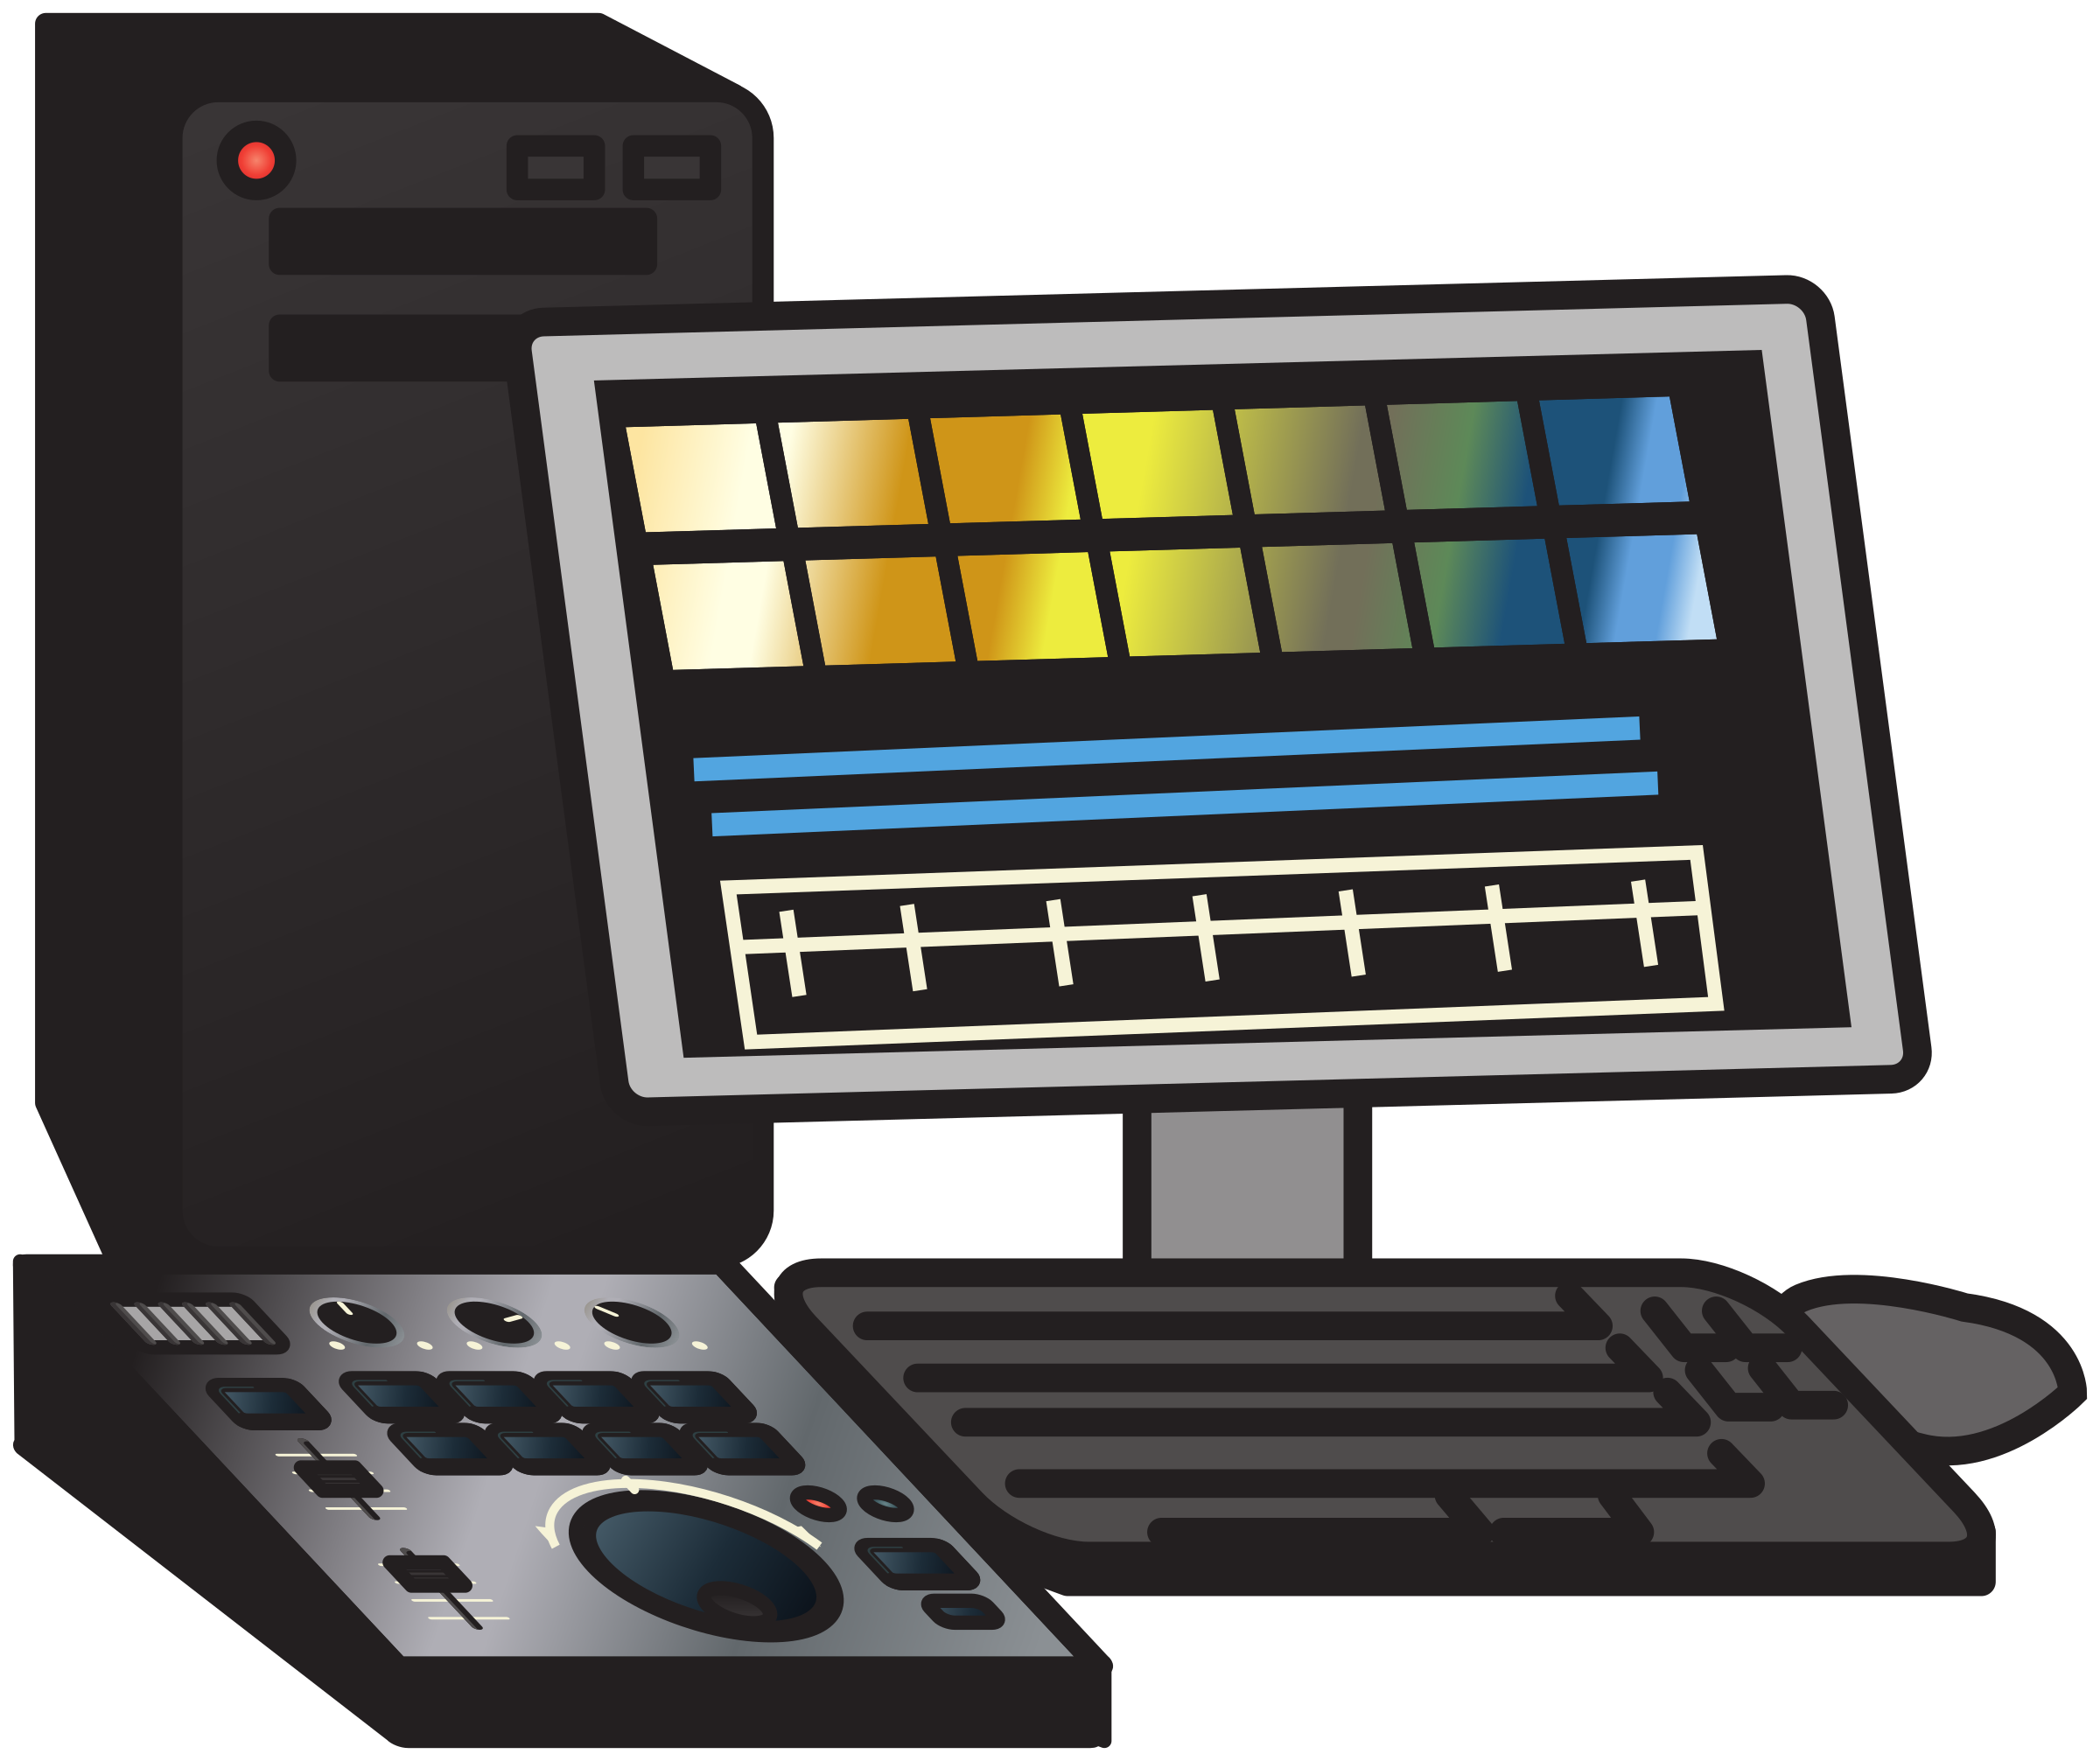 Non-linear video editing system 2